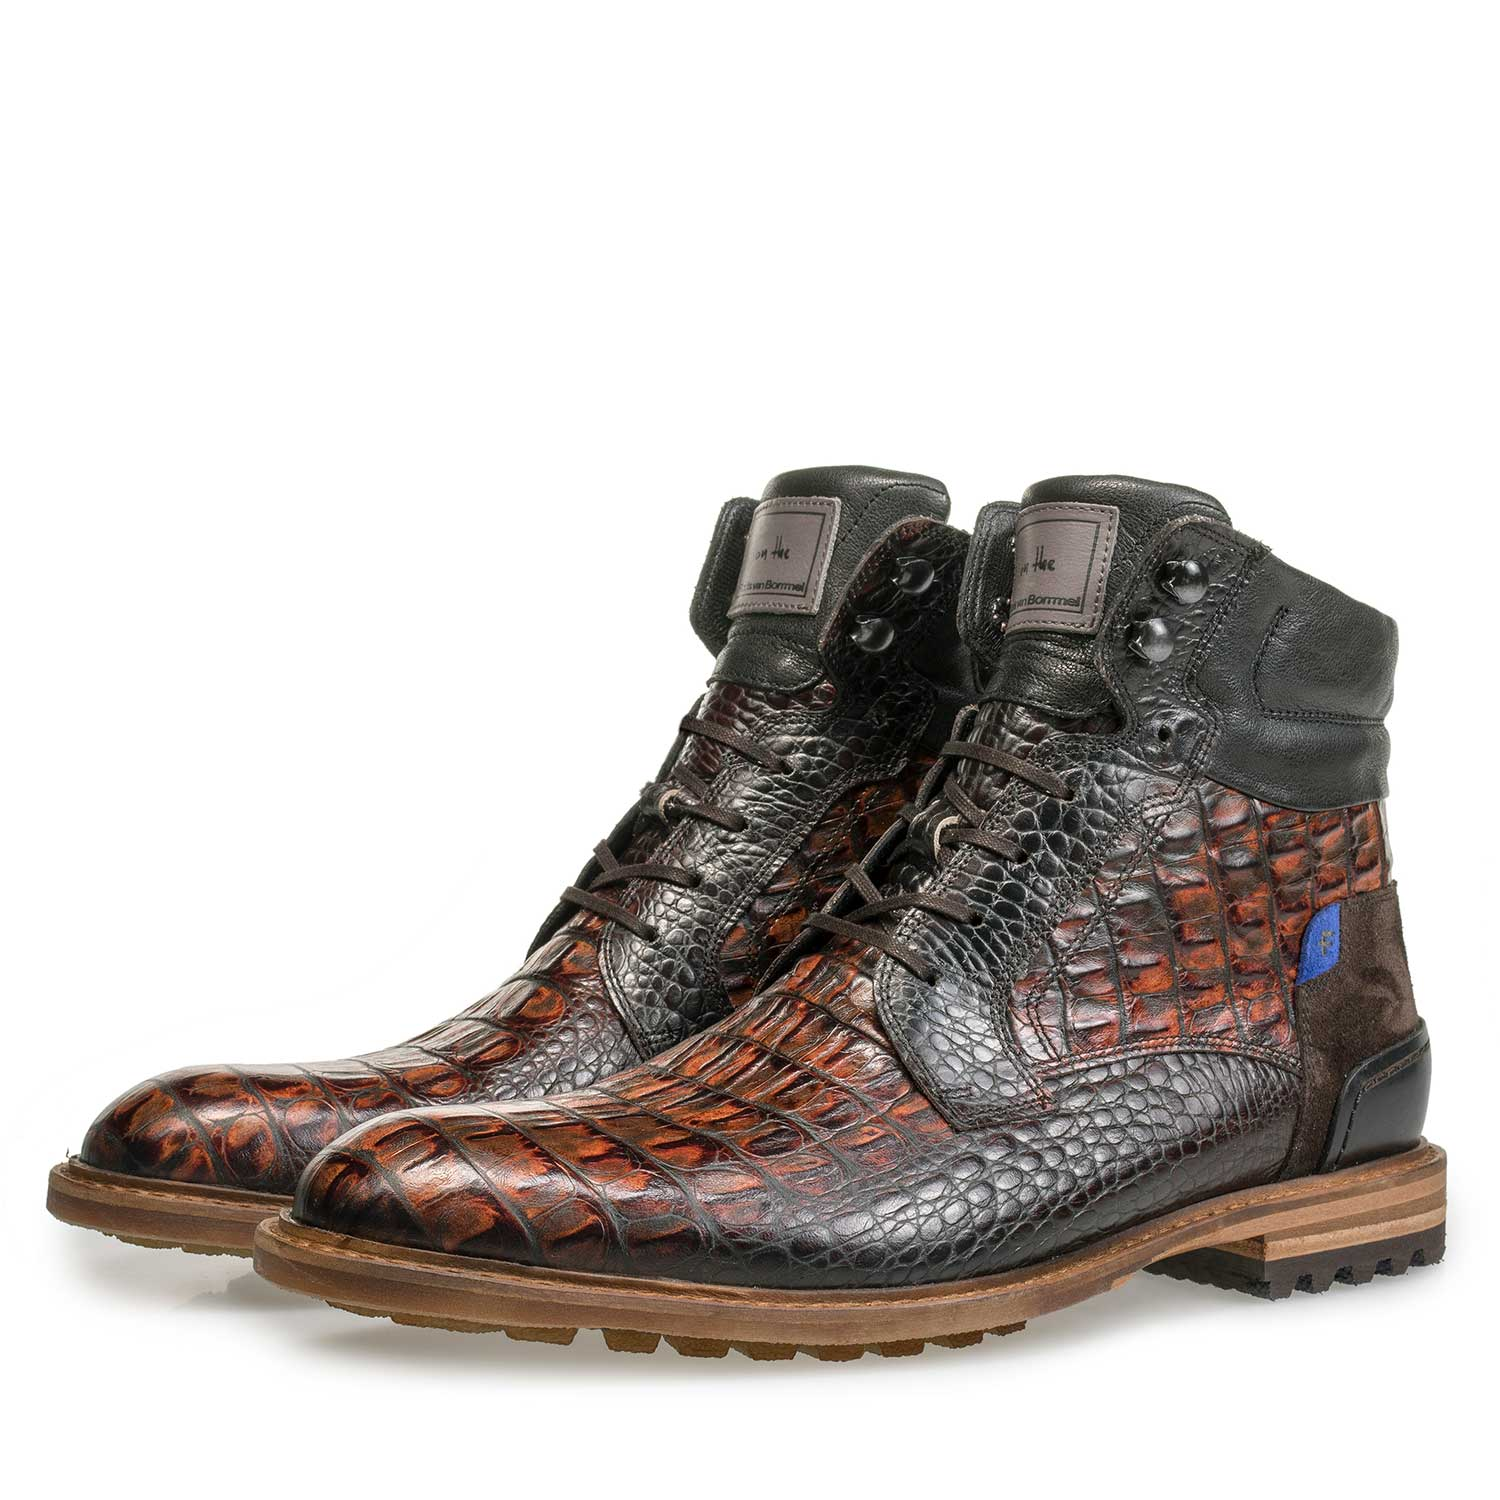 10234/12 - Brown calf leather lace boot with croco print